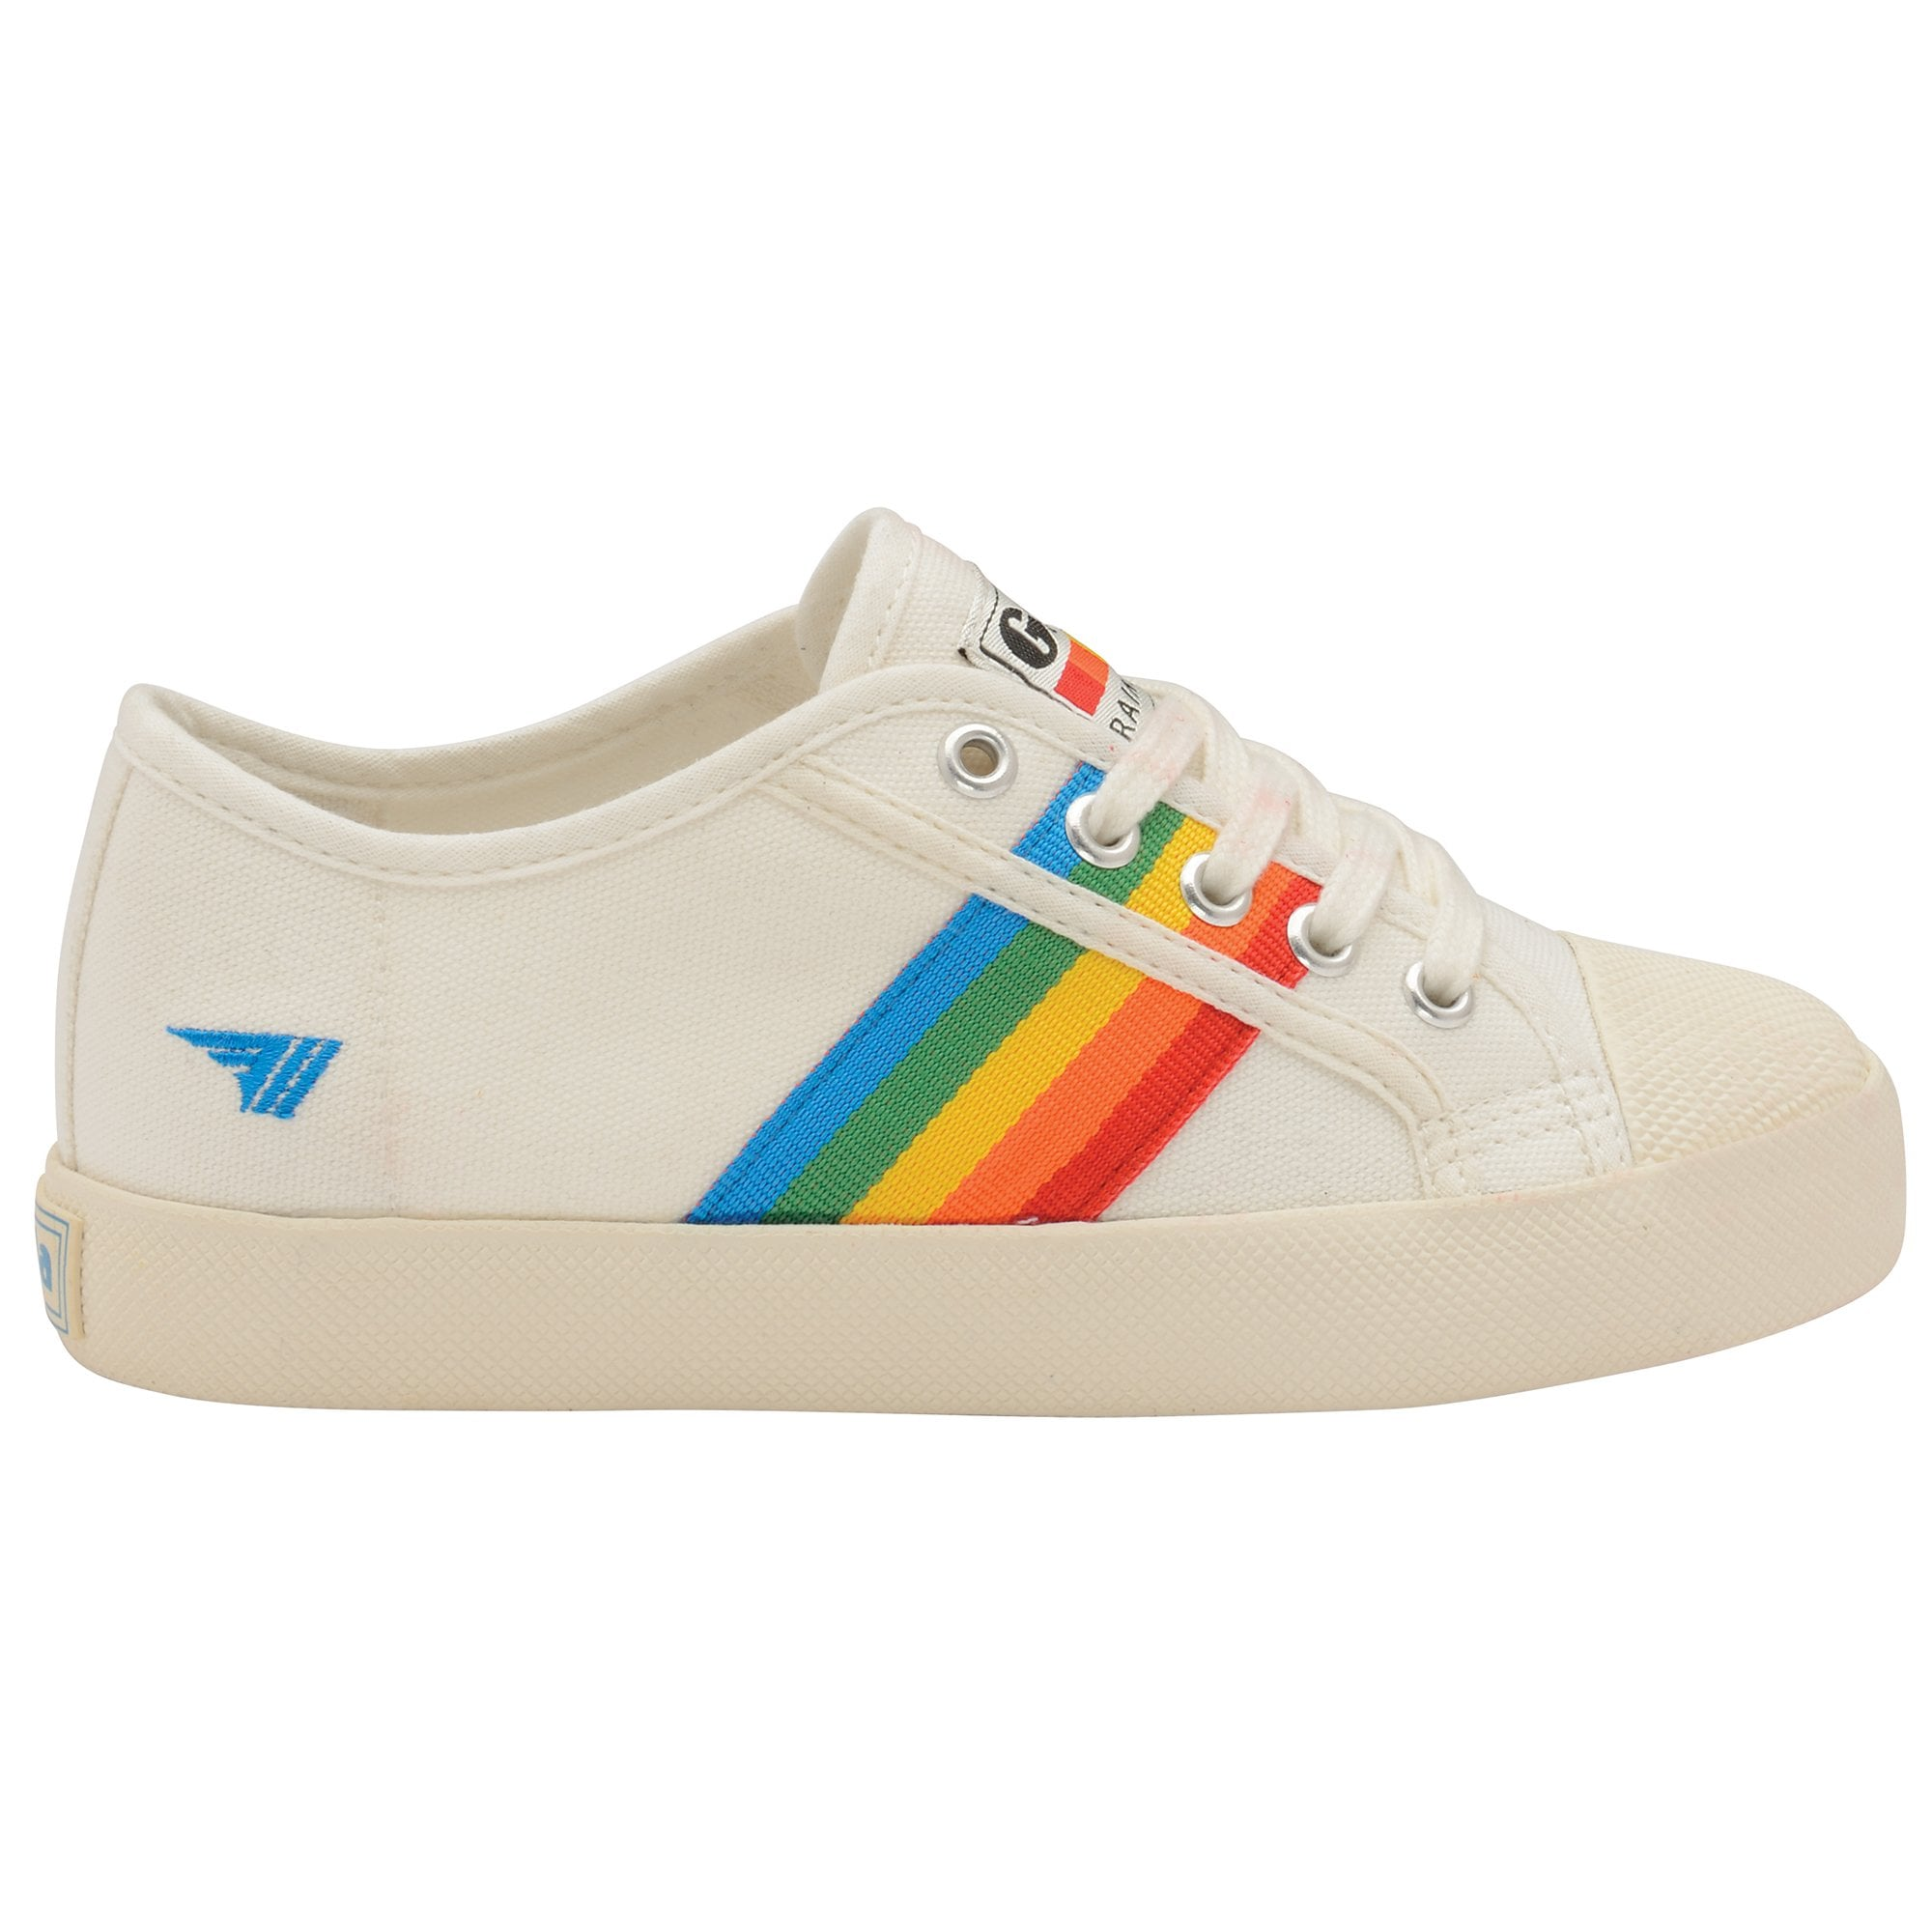 Buy Gola kids Coaster Rainbow trainers in off white/multi online